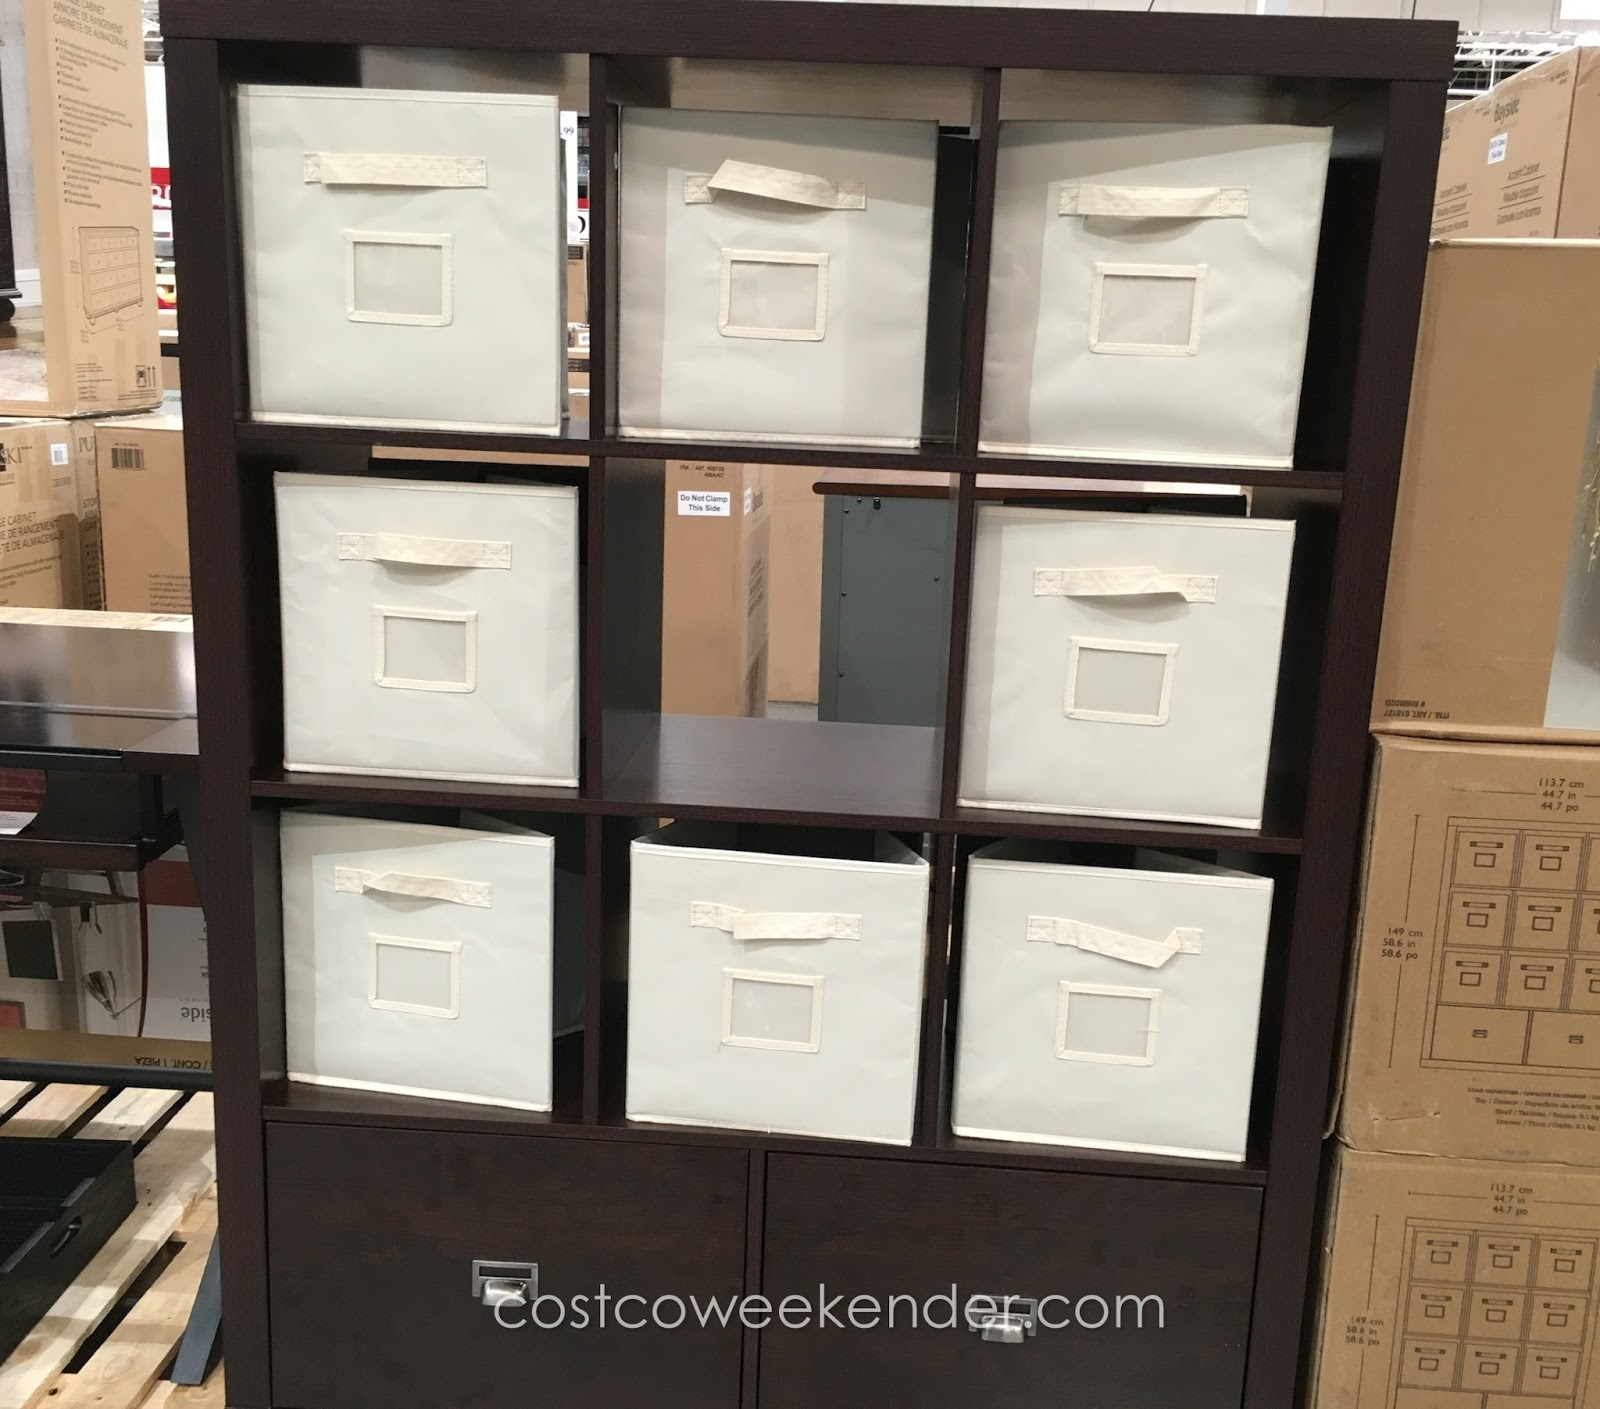 Bayside Furnishings 9 cube Room Divider Bookcase Costco Weekender